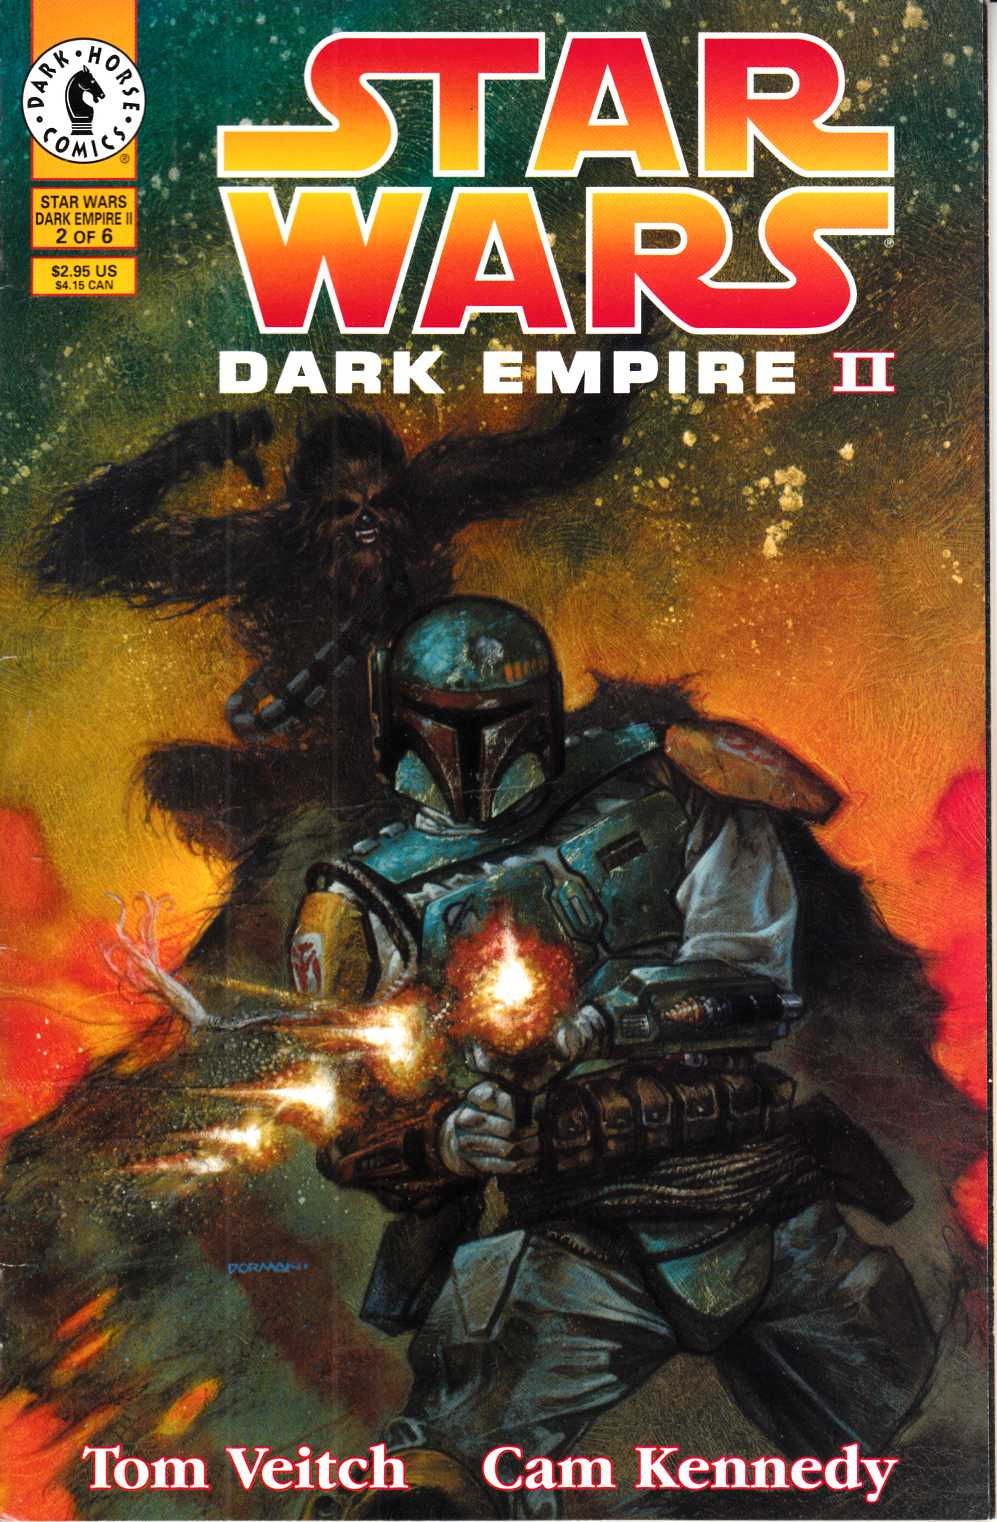 Star Wars Dark Empire II #2 Fine (6.0) [Dark Horse Comic] THUMBNAIL